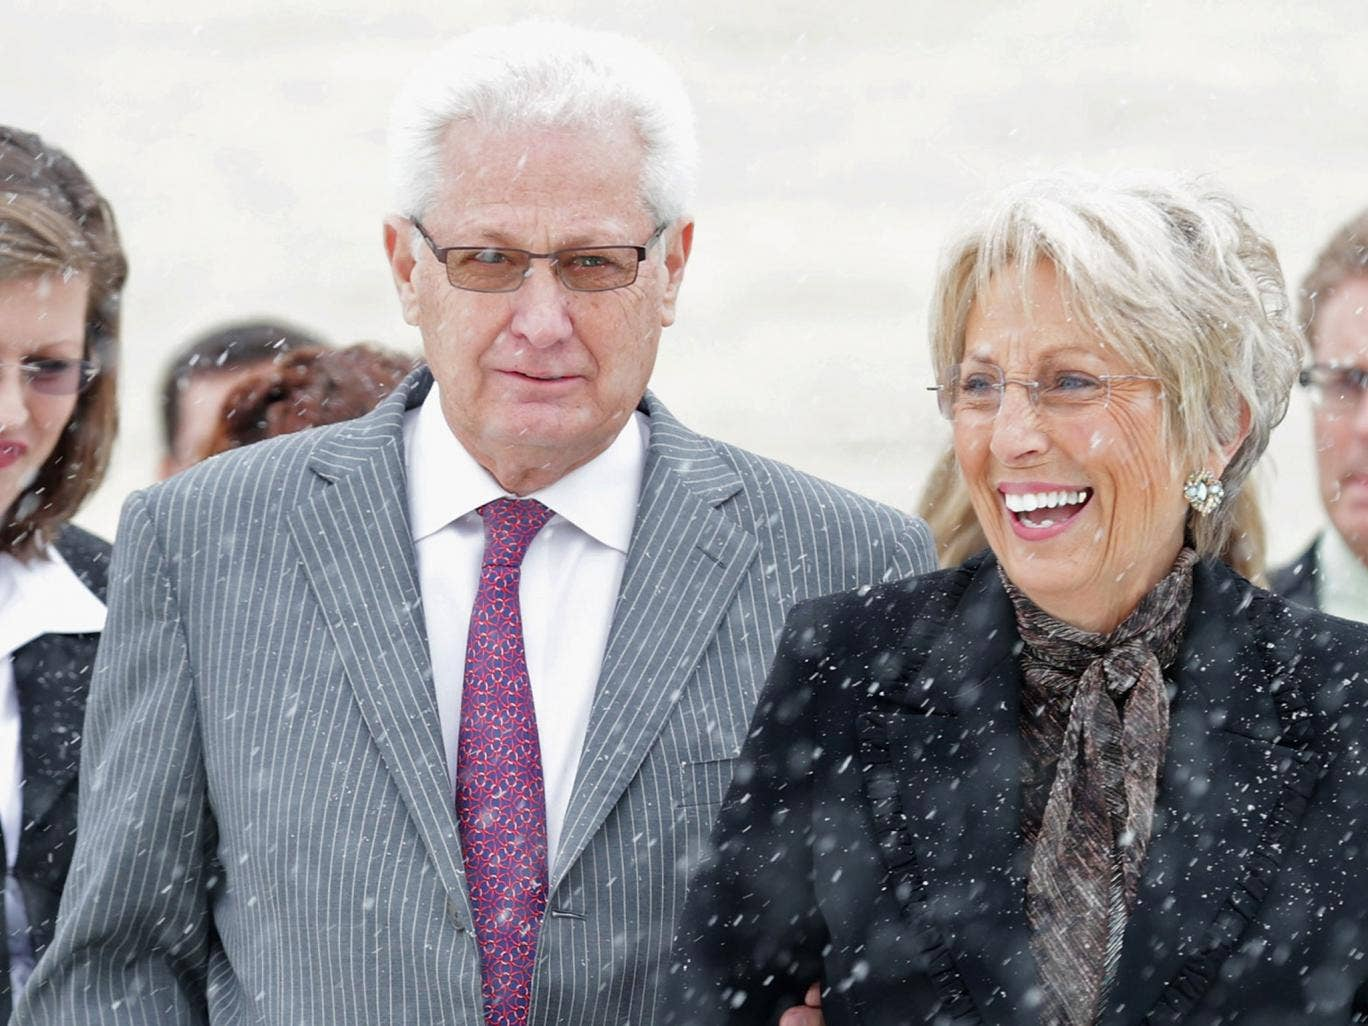 Hobby Lobby co-founders David Green and Barbara Green leave the US Supreme Court